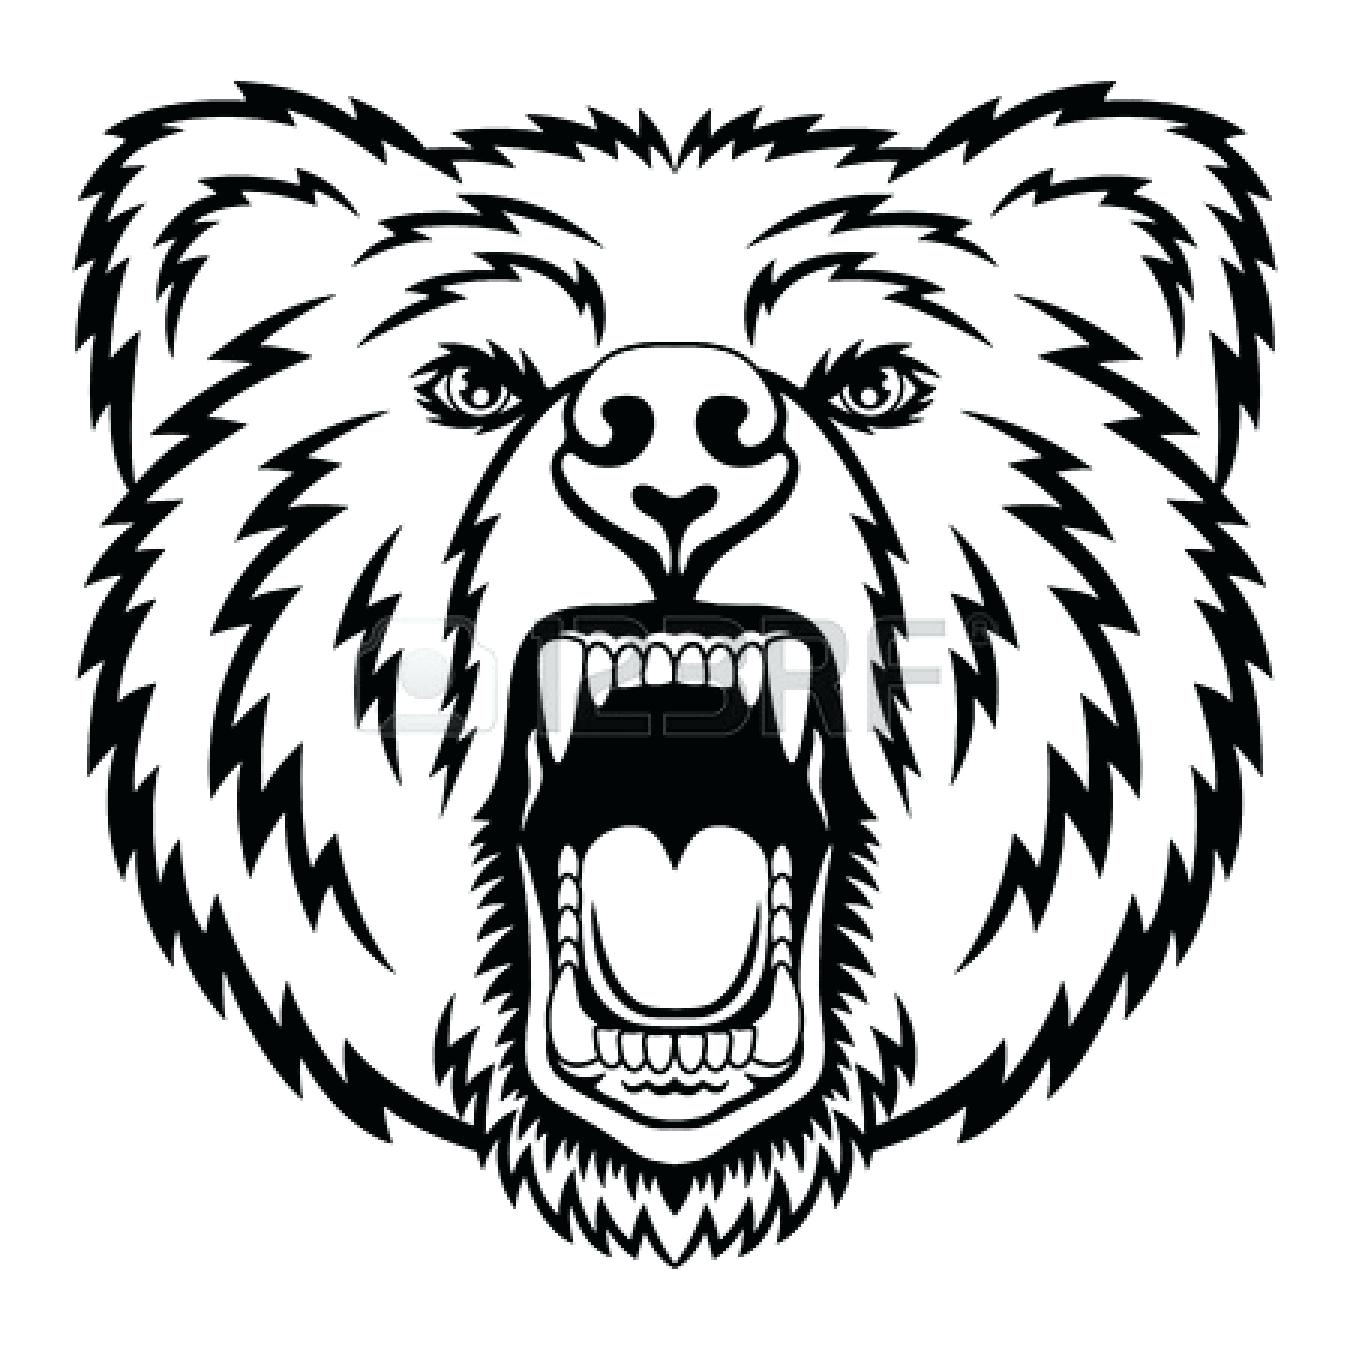 Black Bear Drawing Outline at GetDrawings.com   Free for personal ...